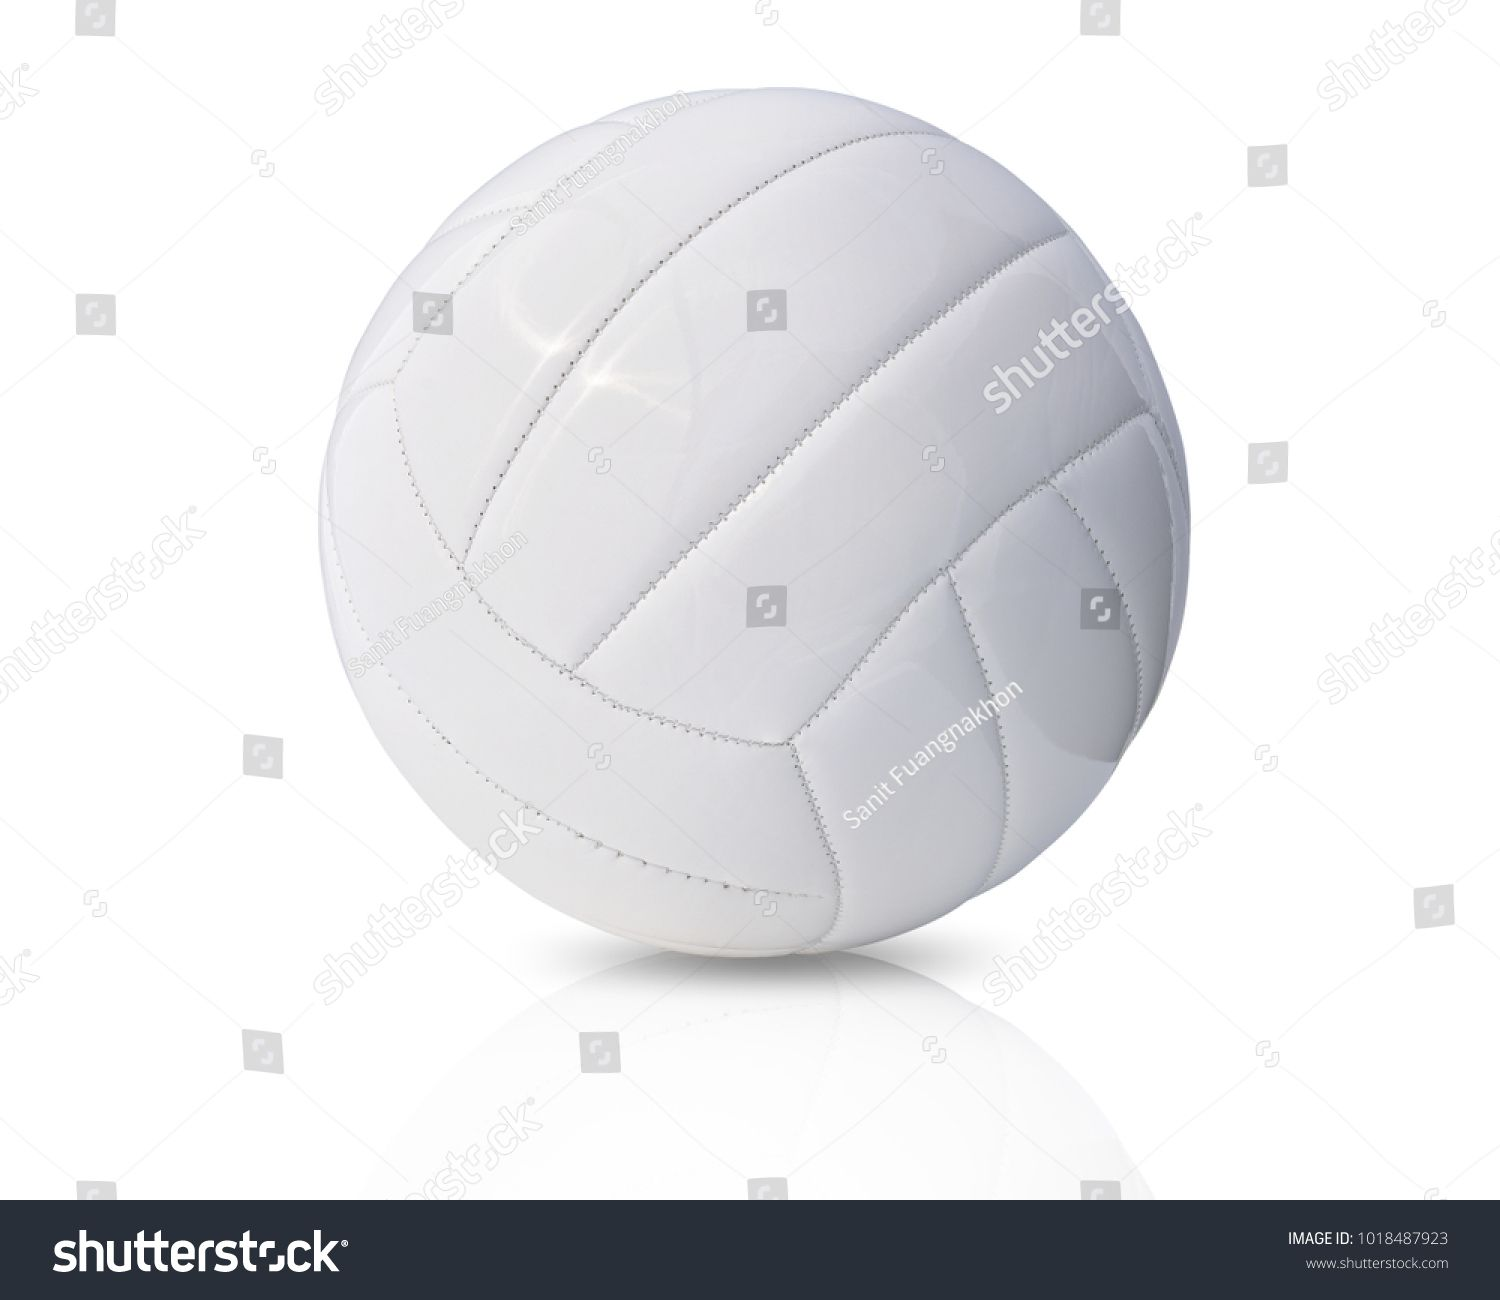 White Leather Volleyball Isolated On White Background This Has Clipping Path Ad Sponsored Volleyball Isolated White Le White Leather Leather Volleyball